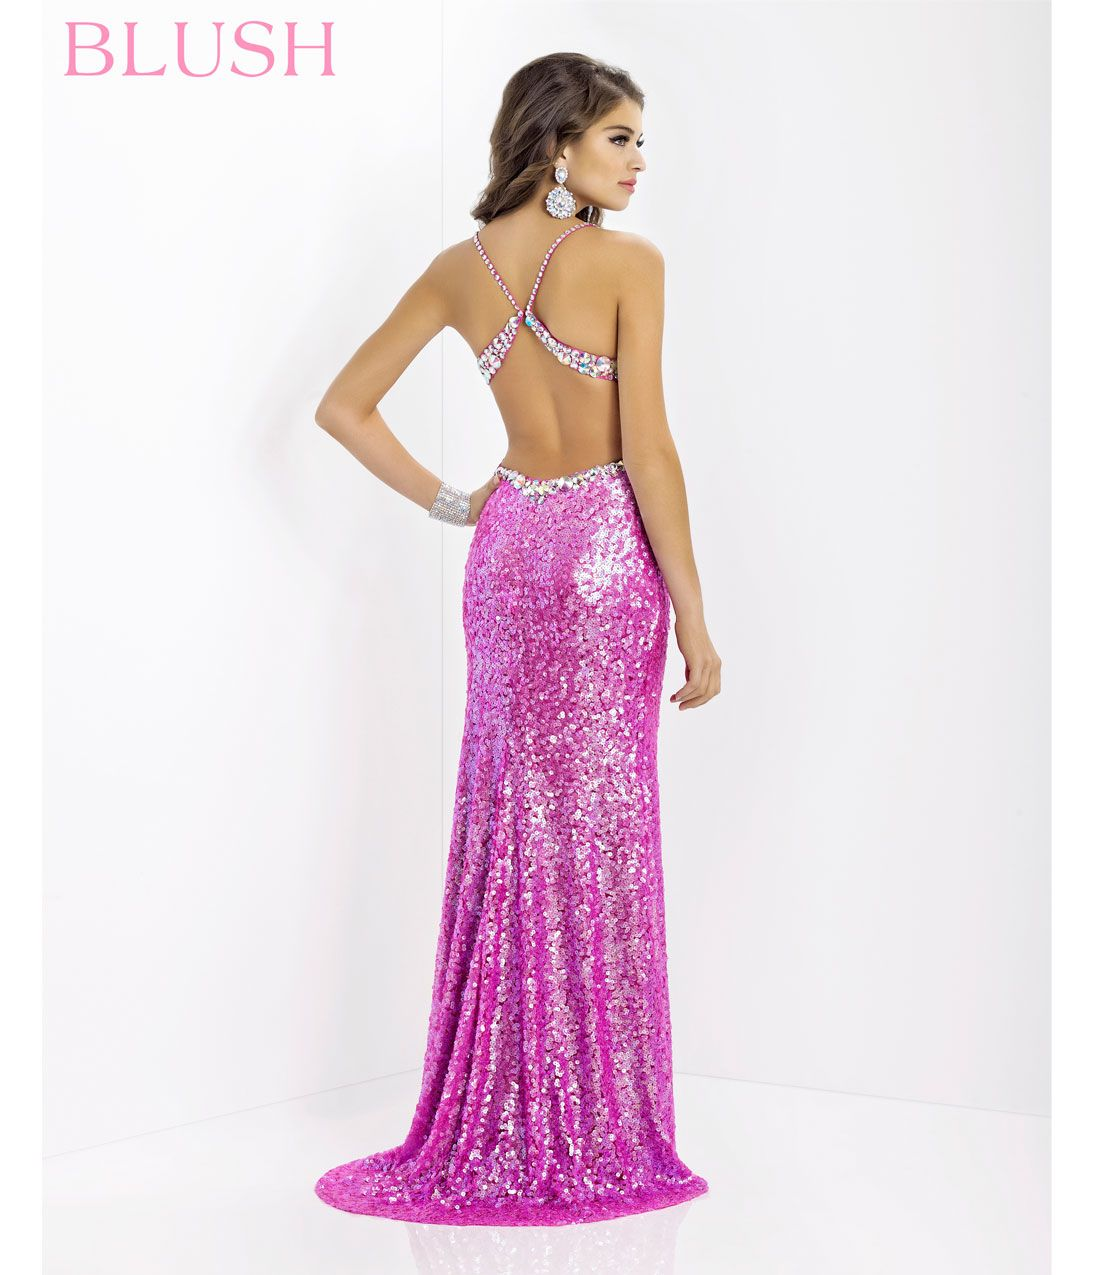 pink sparkly dresses for prom - Google Search | Clothes | Pinterest ...